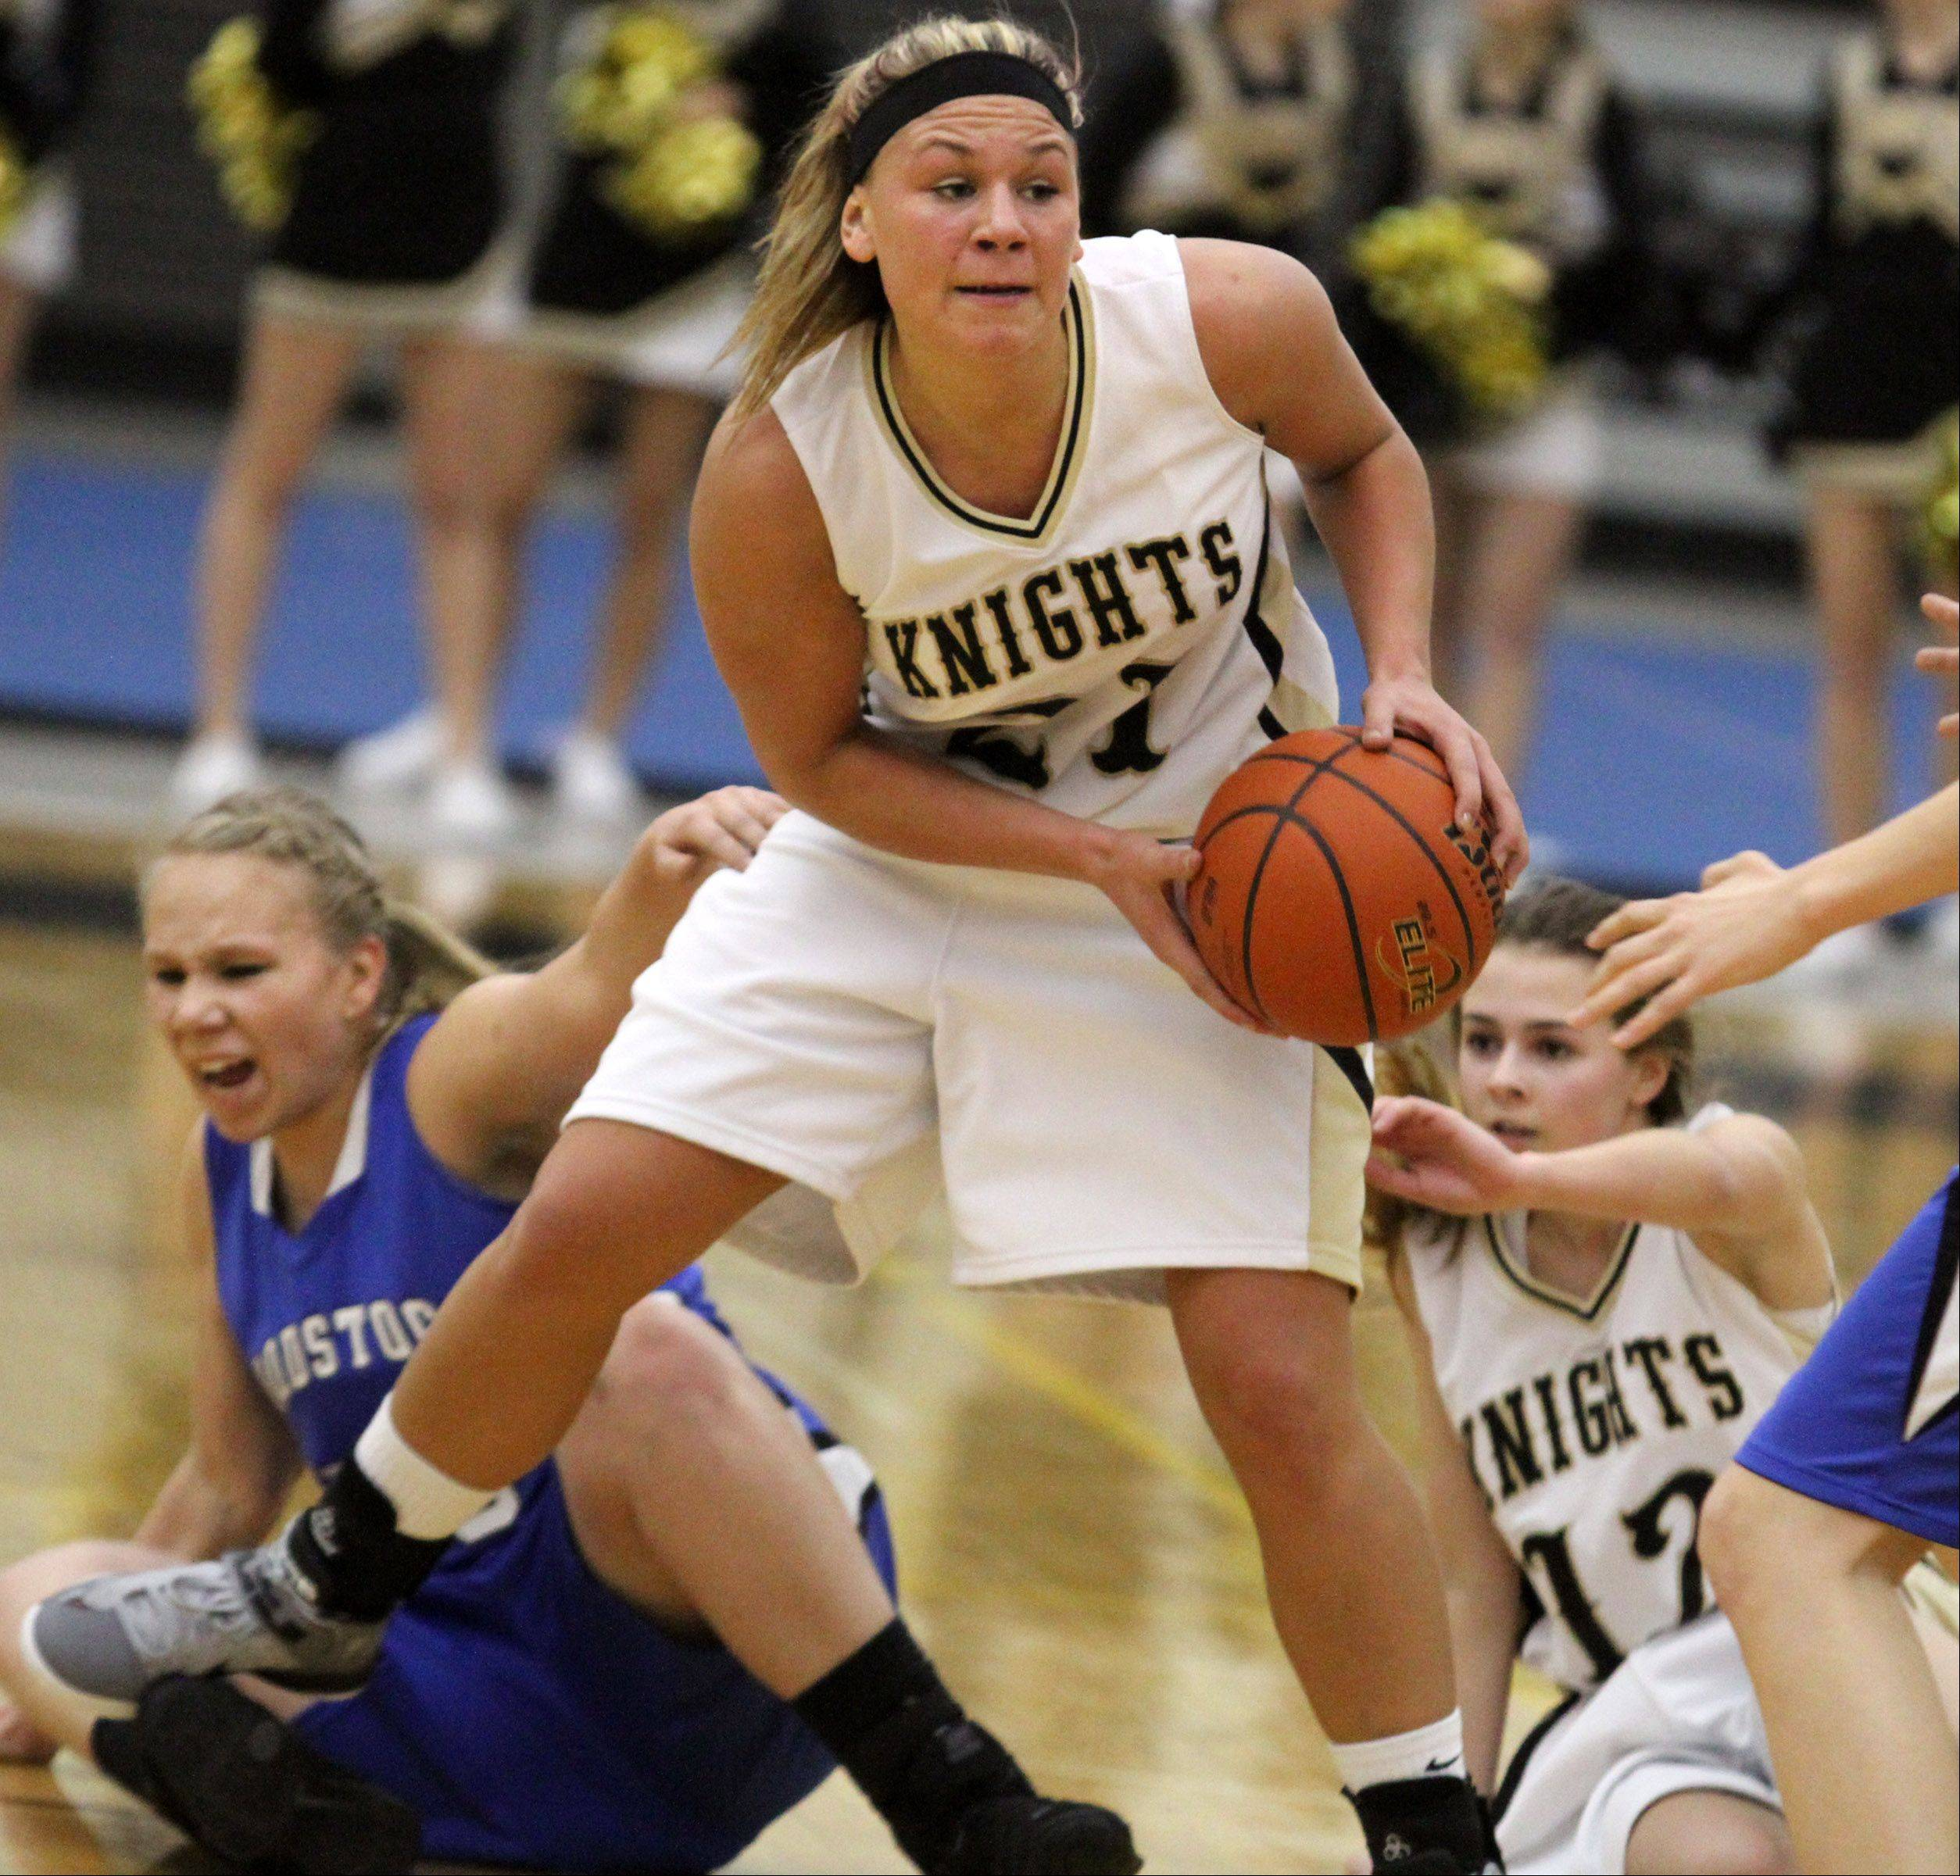 Grayslake North's Shyanne Ludwick looks to pass after picking up a loose ball against Woodstock.